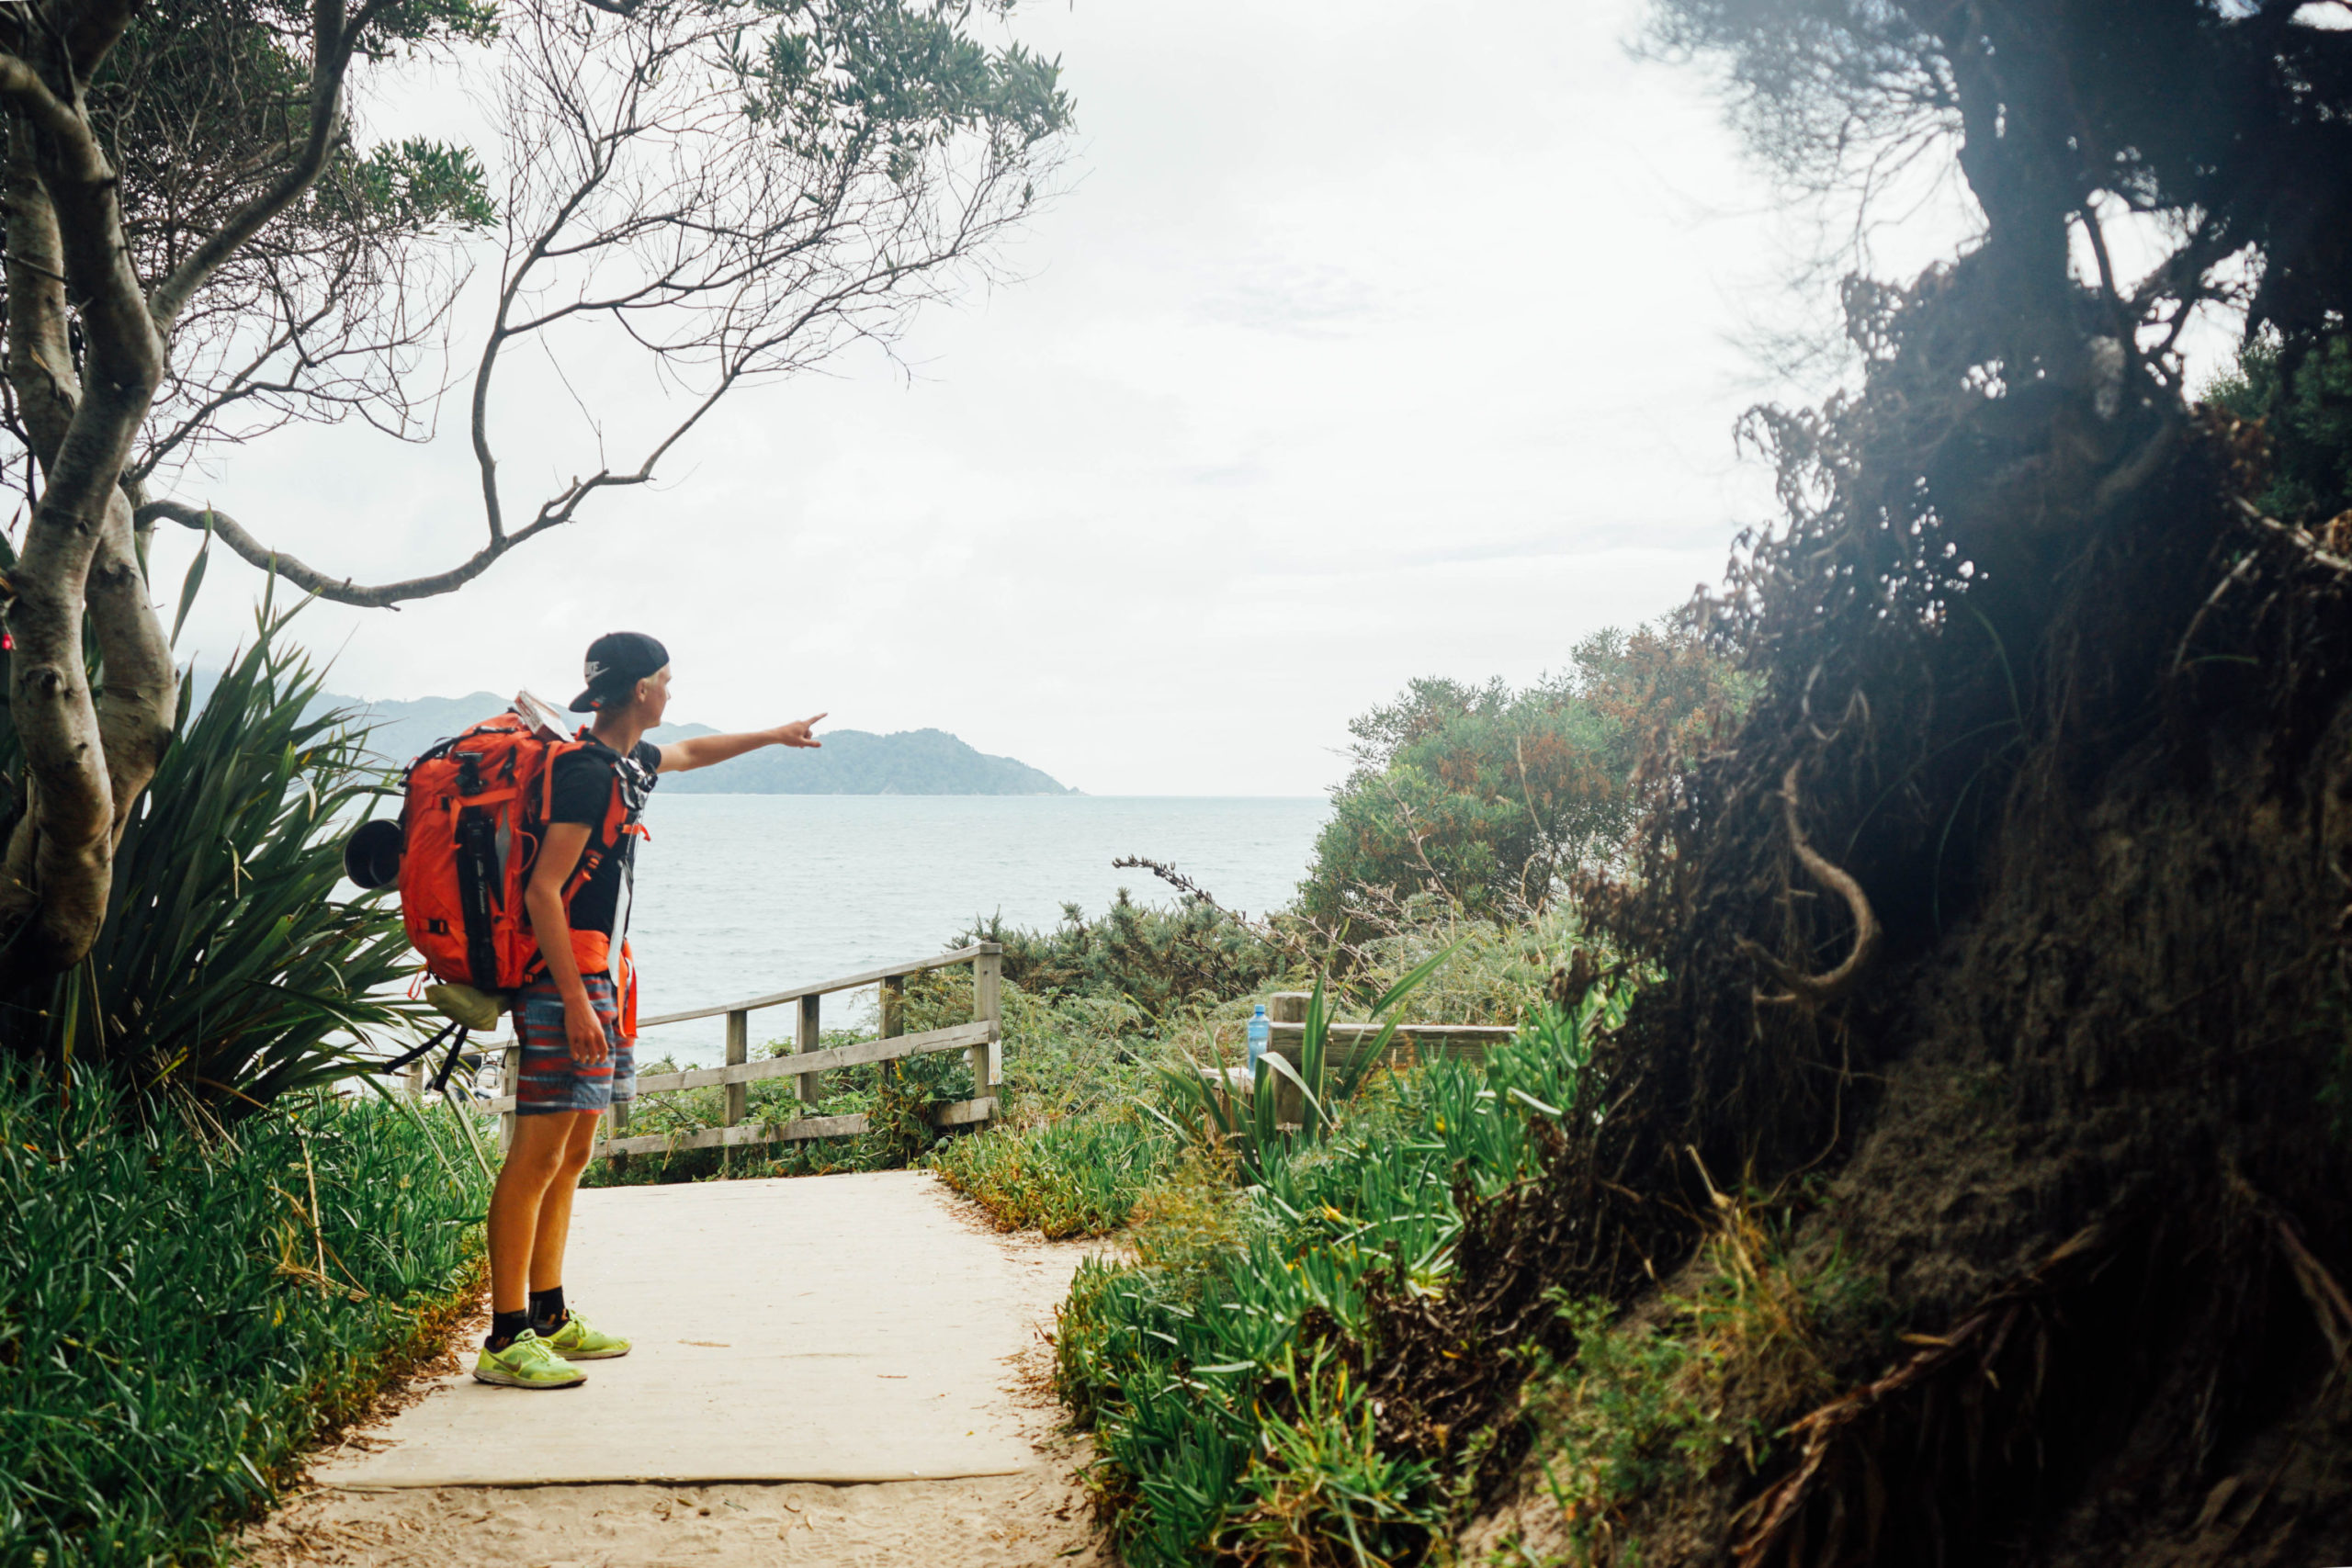 Nico shows you the way - not only in the backpackers guide for New Zealand